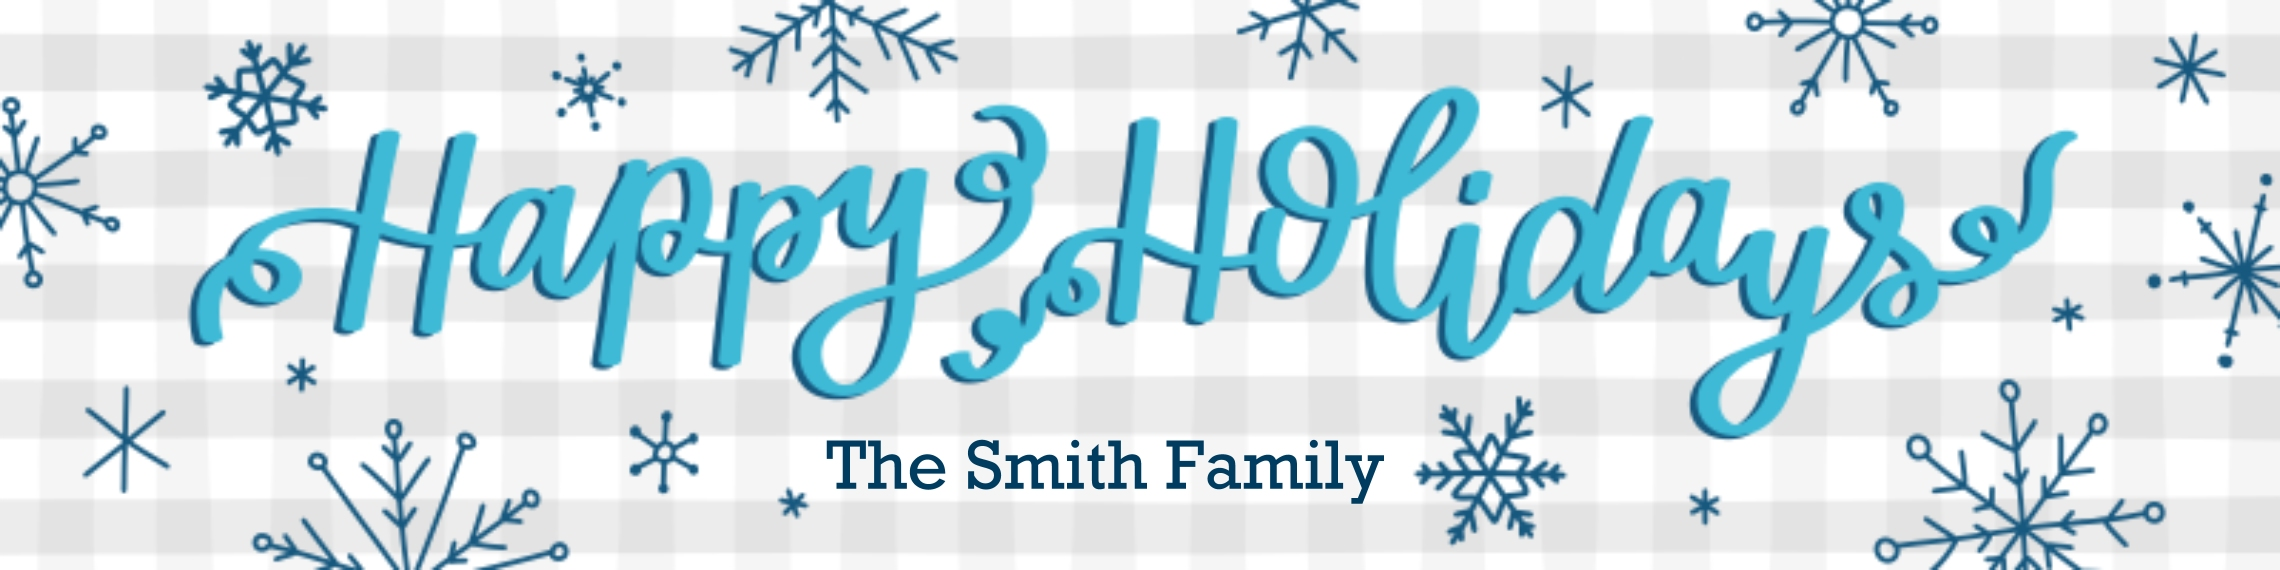 Holiday Vinyl Banner, 2x8, Home Décor -Holiday Snowflakes